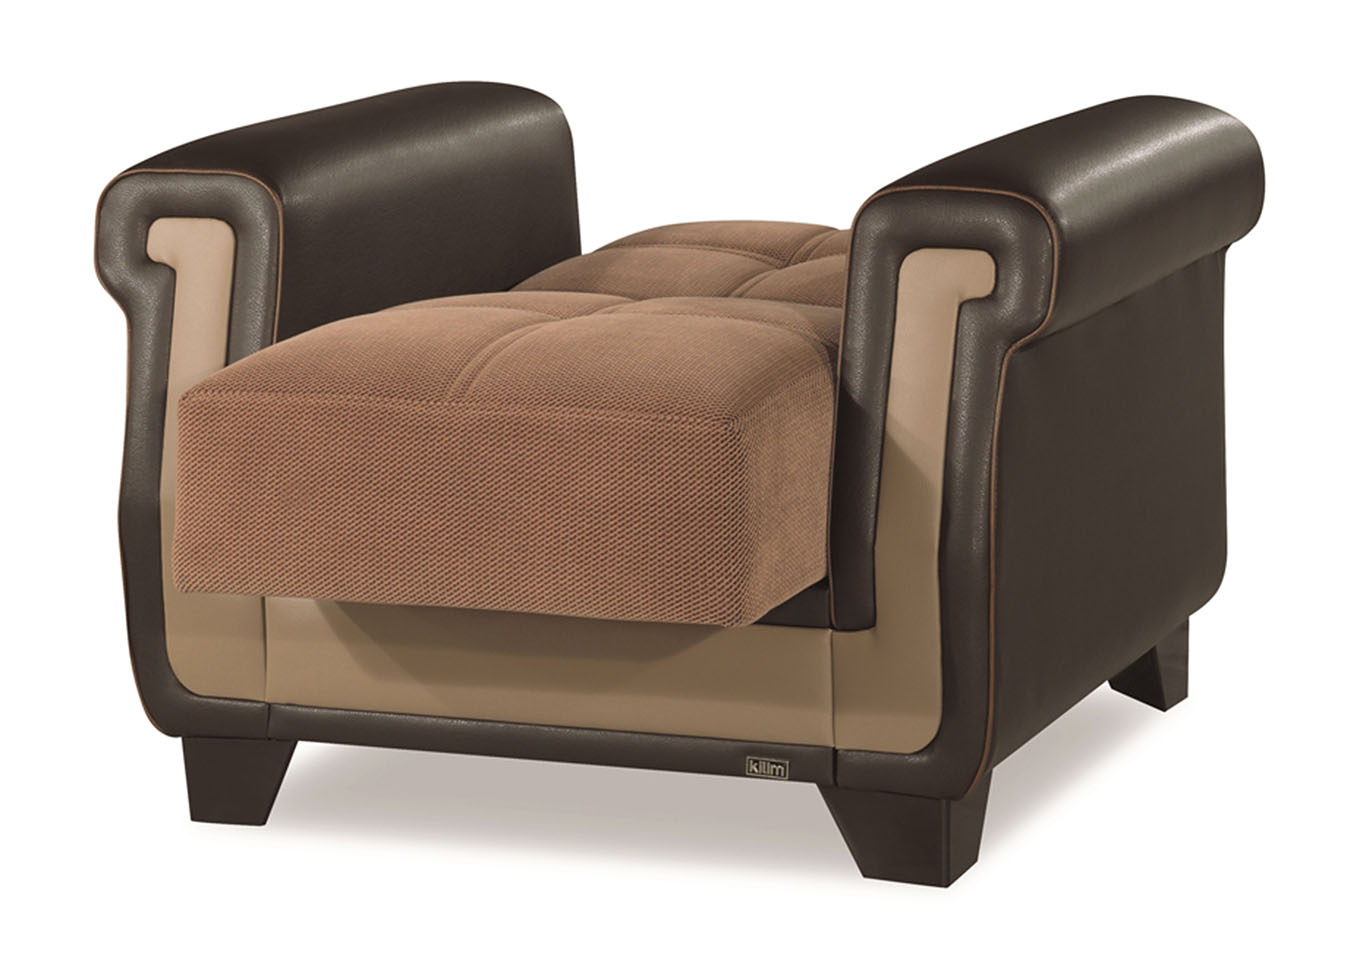 Proline Brown Microfiber Arm Chair,CasaMode Functional Furniture